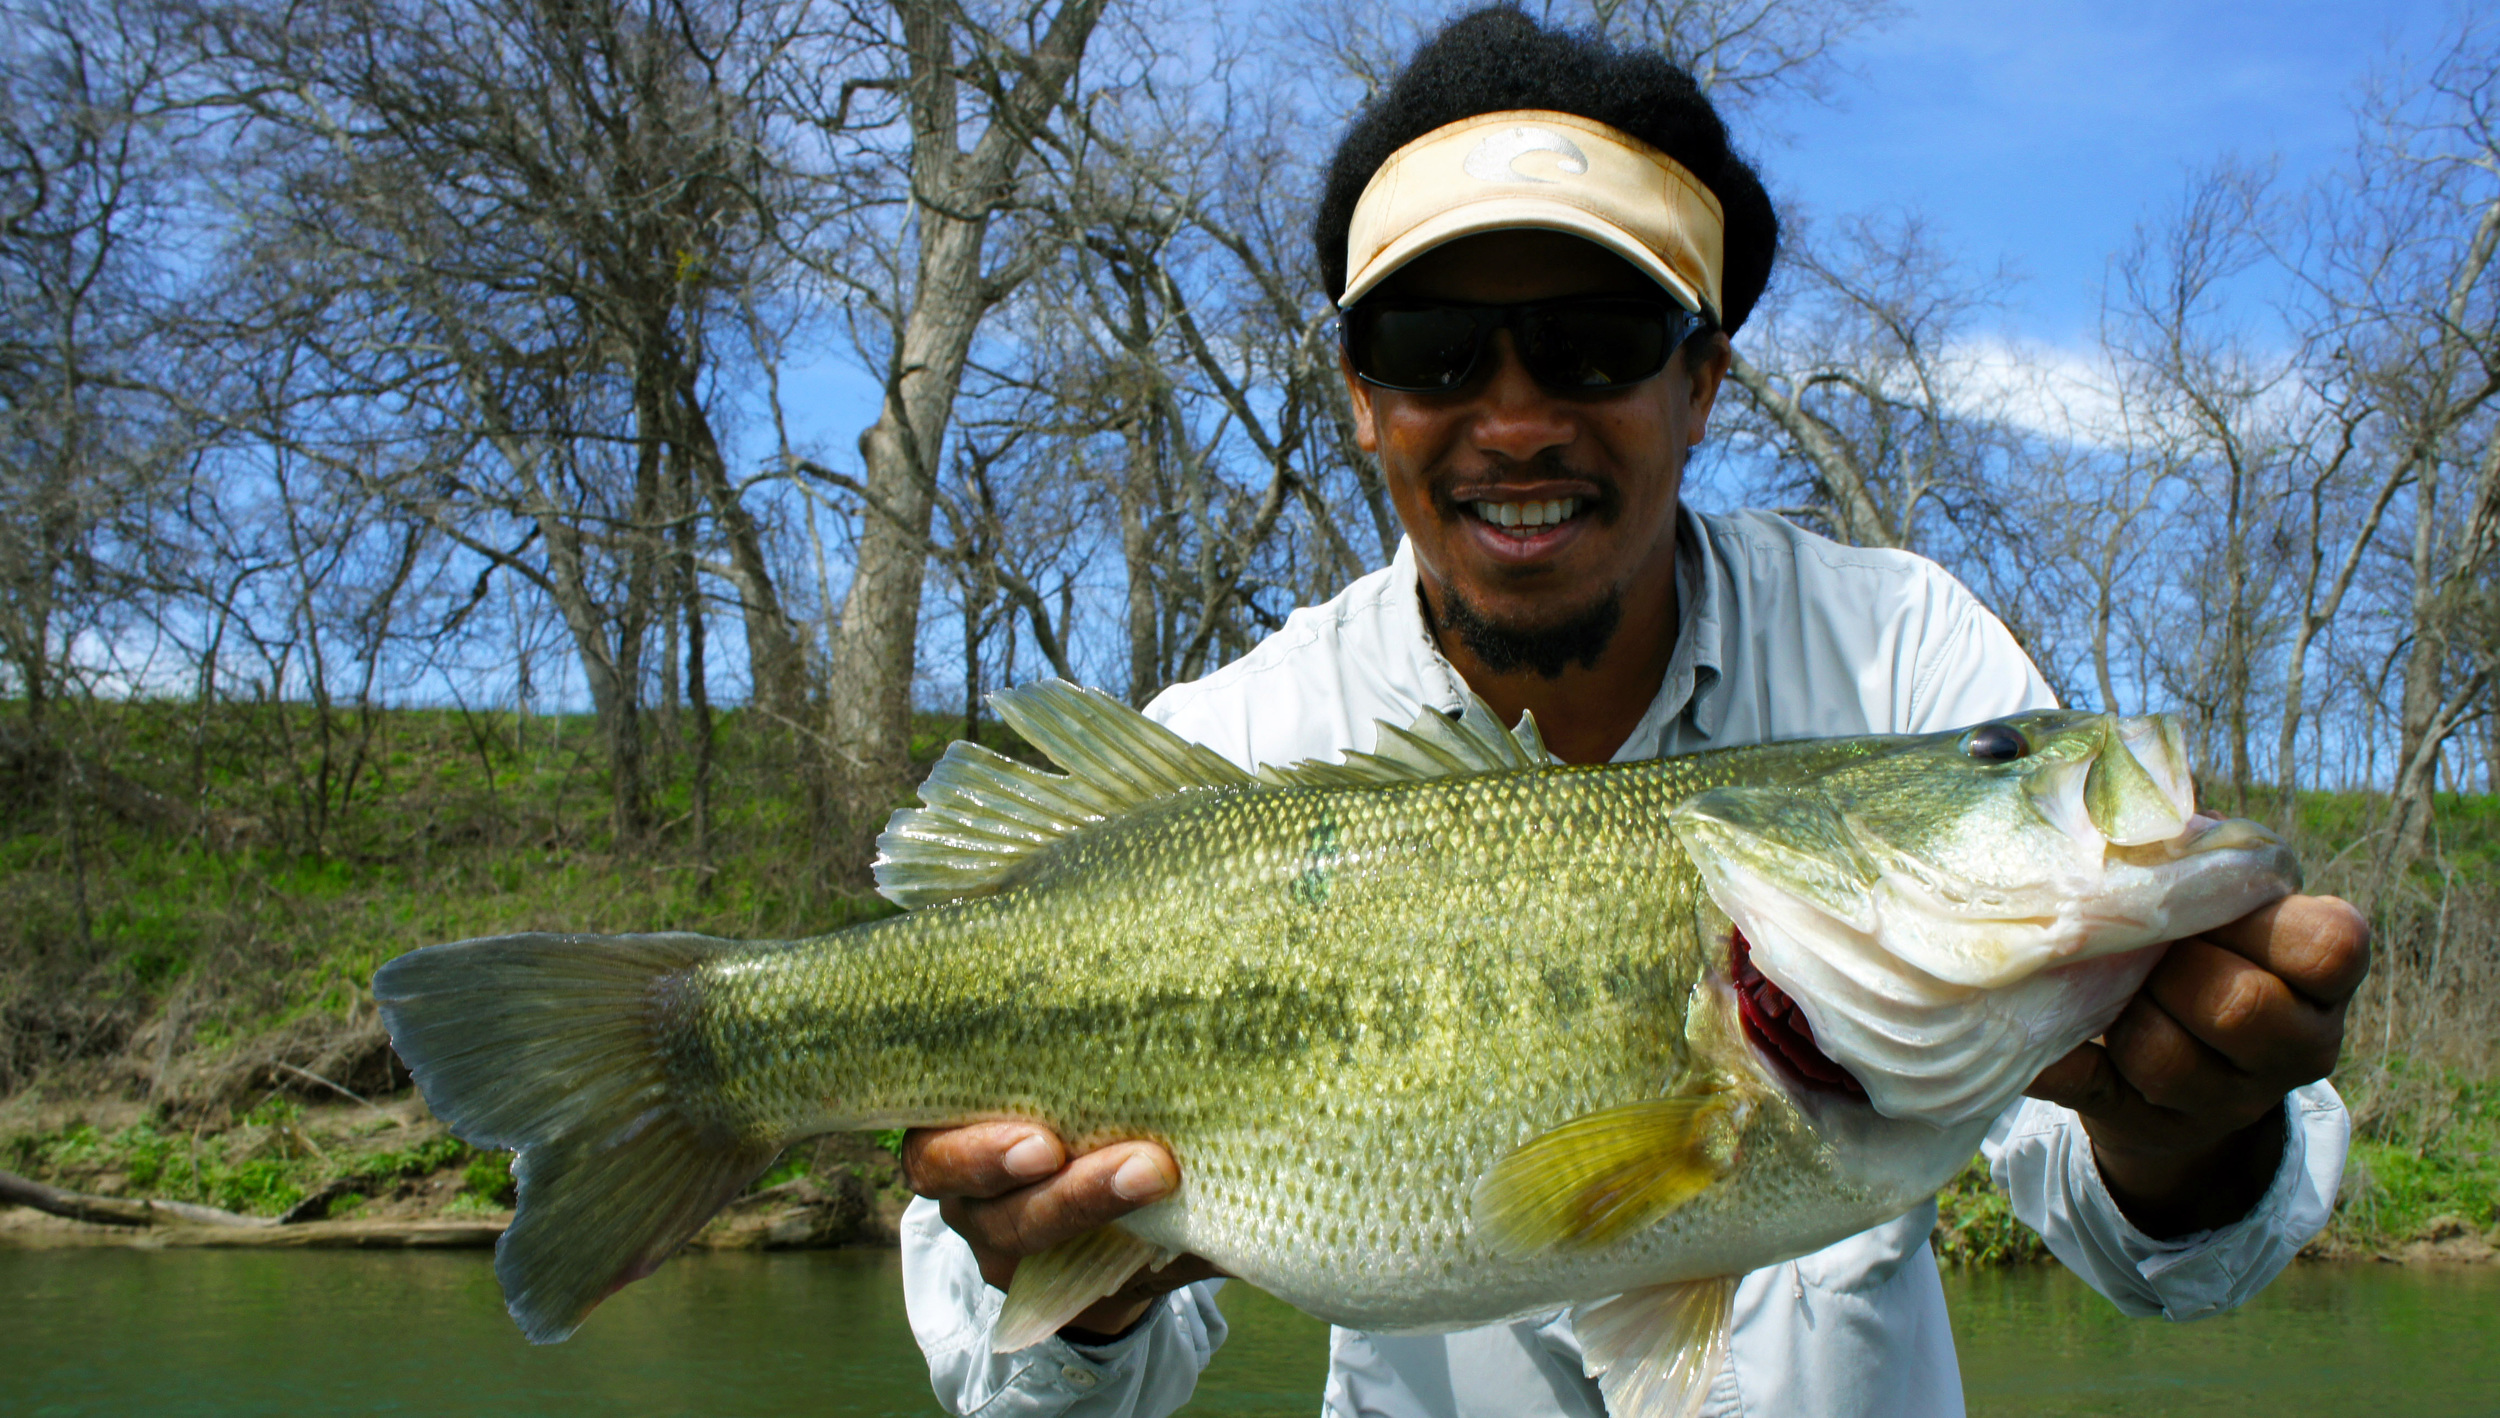 Huge Colorado River Bass